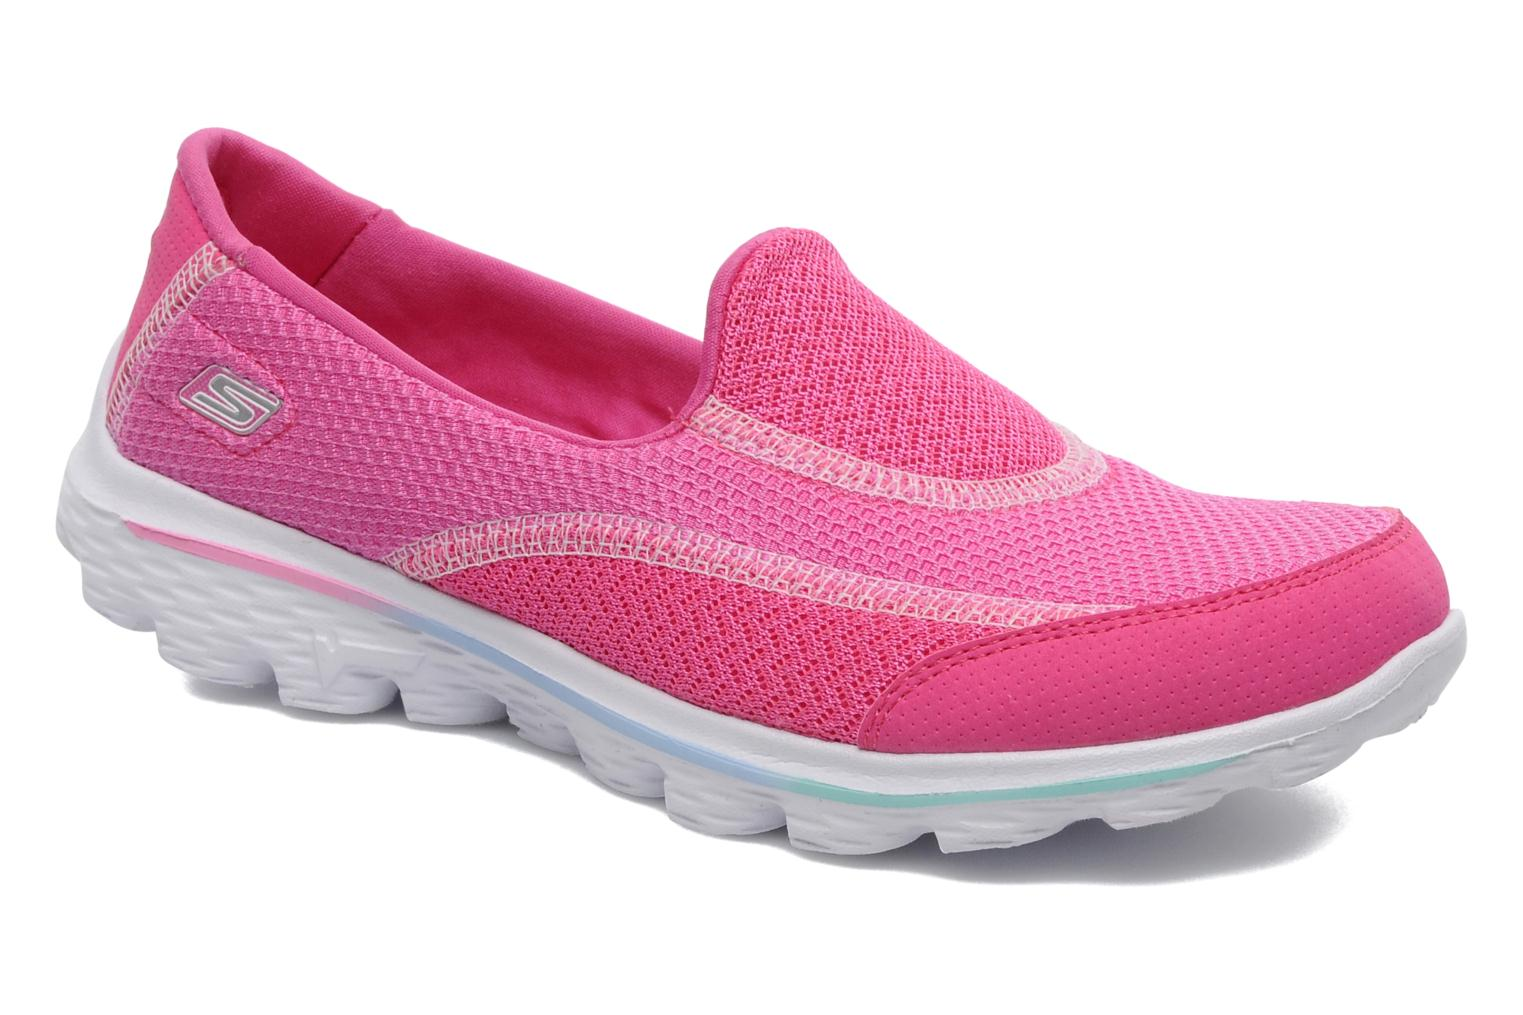 skechers go walk 4 trainers in pink at 184132. Black Bedroom Furniture Sets. Home Design Ideas